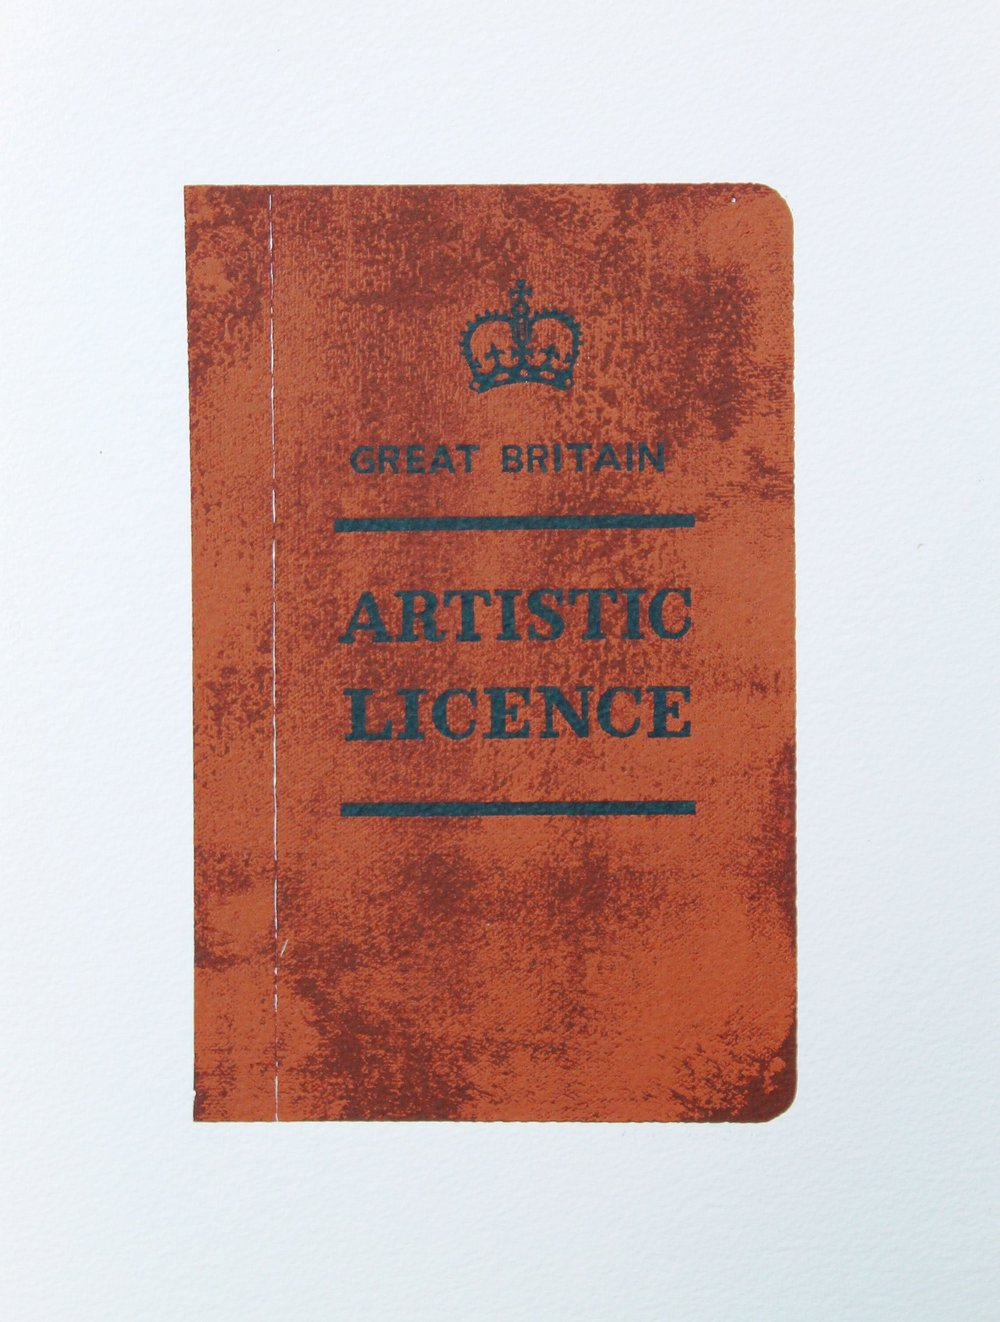 'Artistic Licence'. Screen print , edition 30. Image size 15 x 22cm. Paper size 28 x 38cm. M Grover 2015